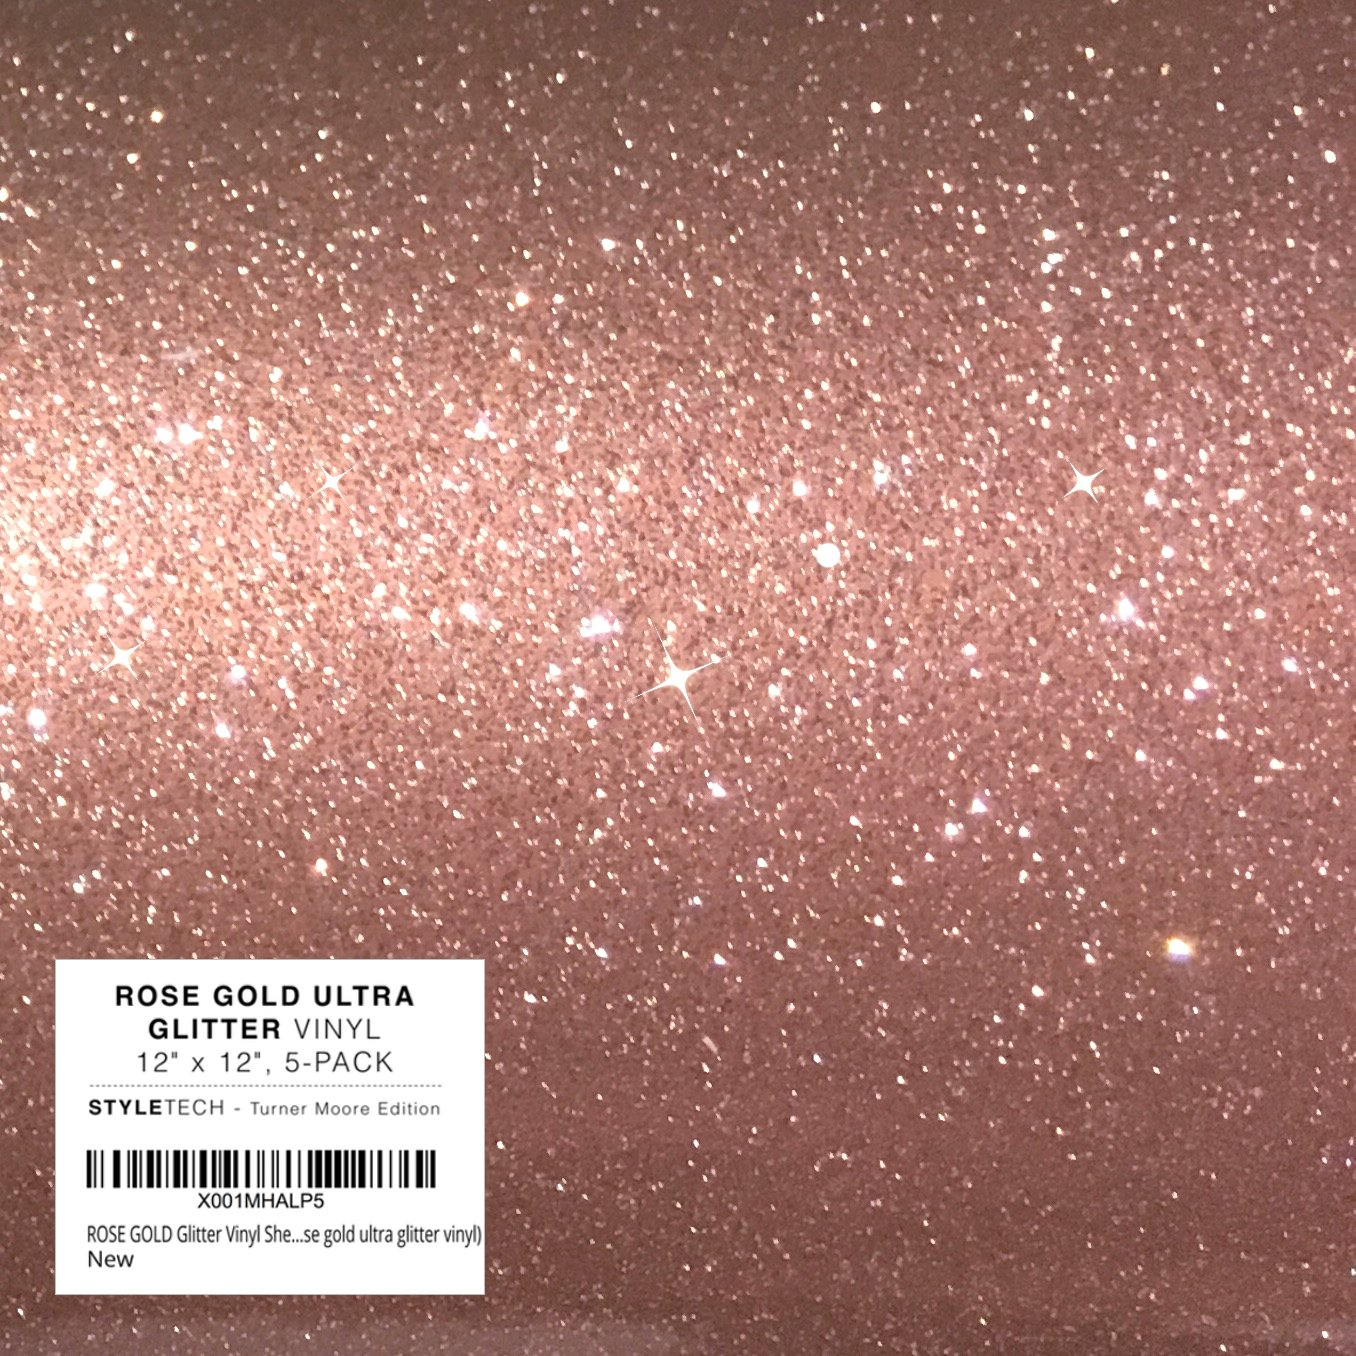 ROSE GOLD Glitter Vinyl Sheets 12 x 12 | 5-Pack Craft Vinyl Adhesive | Cricut Expression Explore, Silhouette Cameo, Signs, Stickers Decals by StyleTech - Turner Moore (rose gold ultra glitter vinyl) TM-ROSE-UL